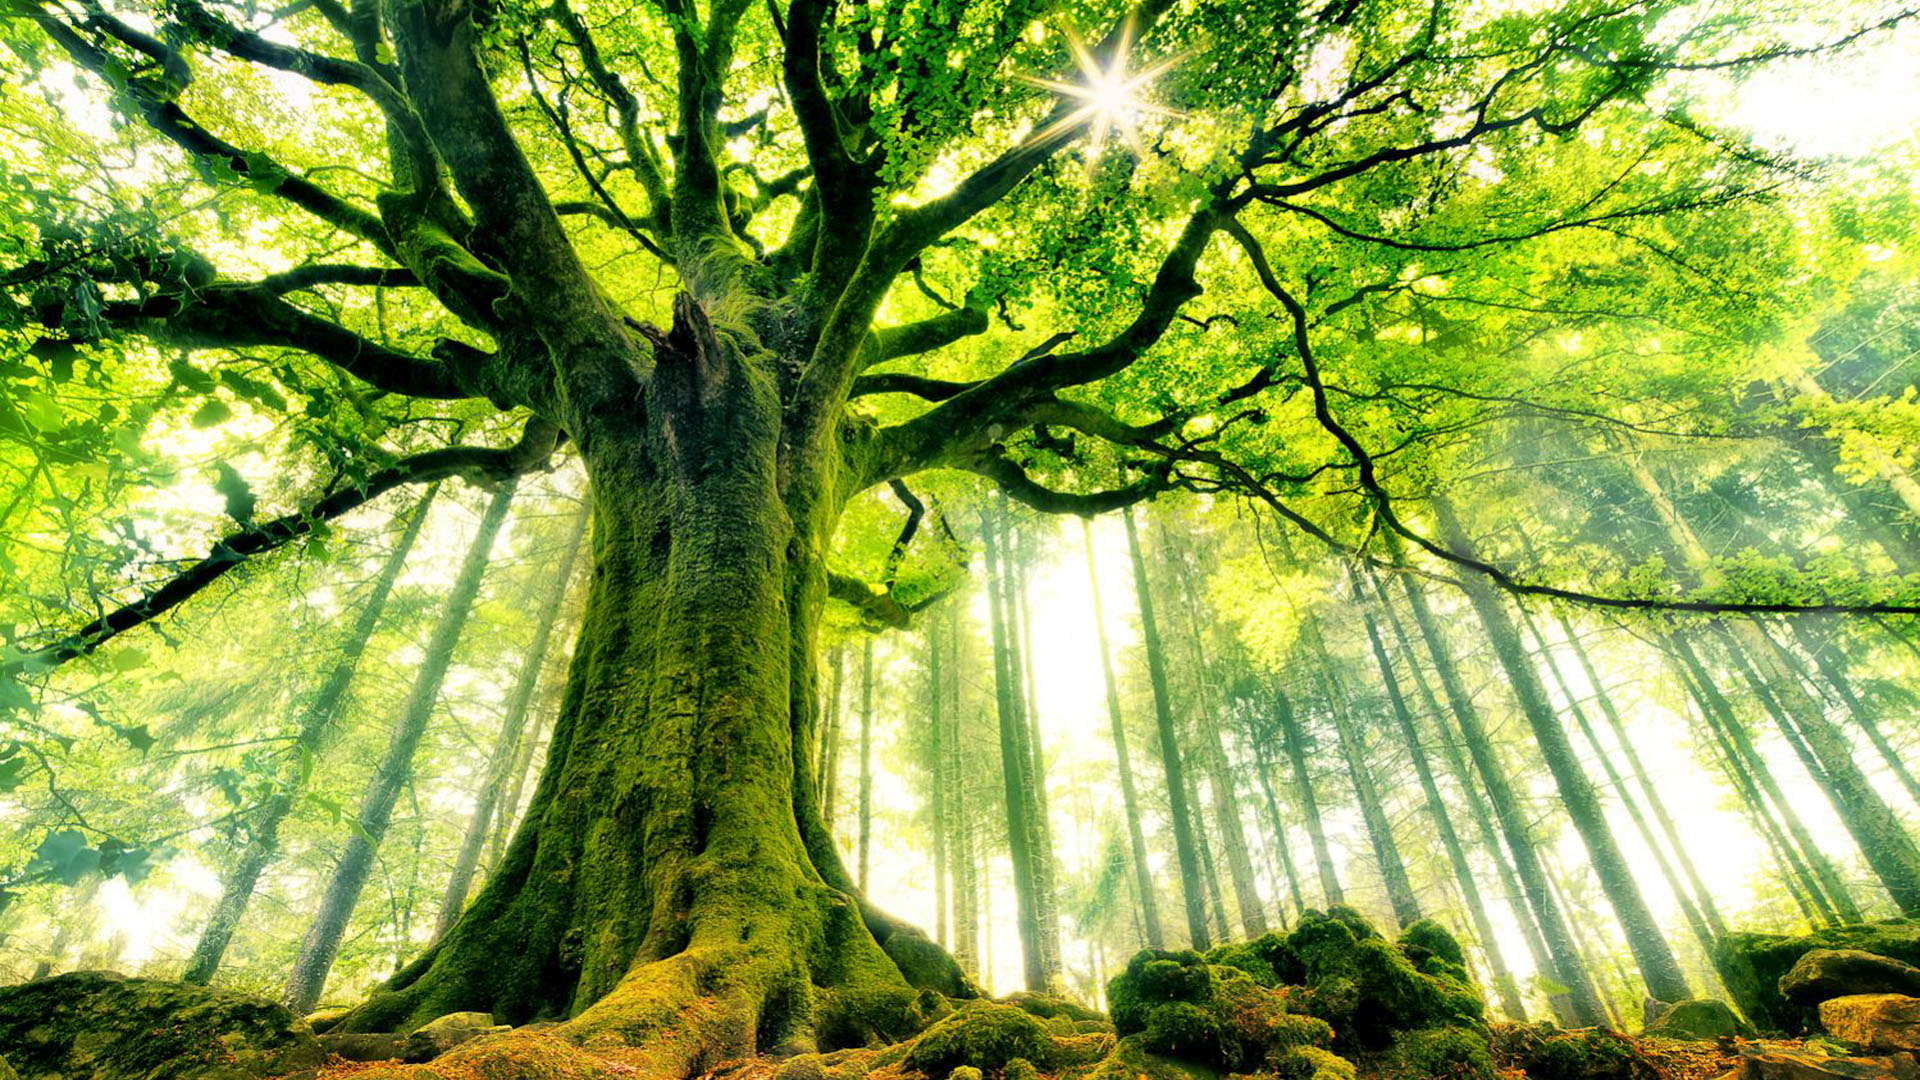 Ancient-Tree-HD-Wallpaper.jpg